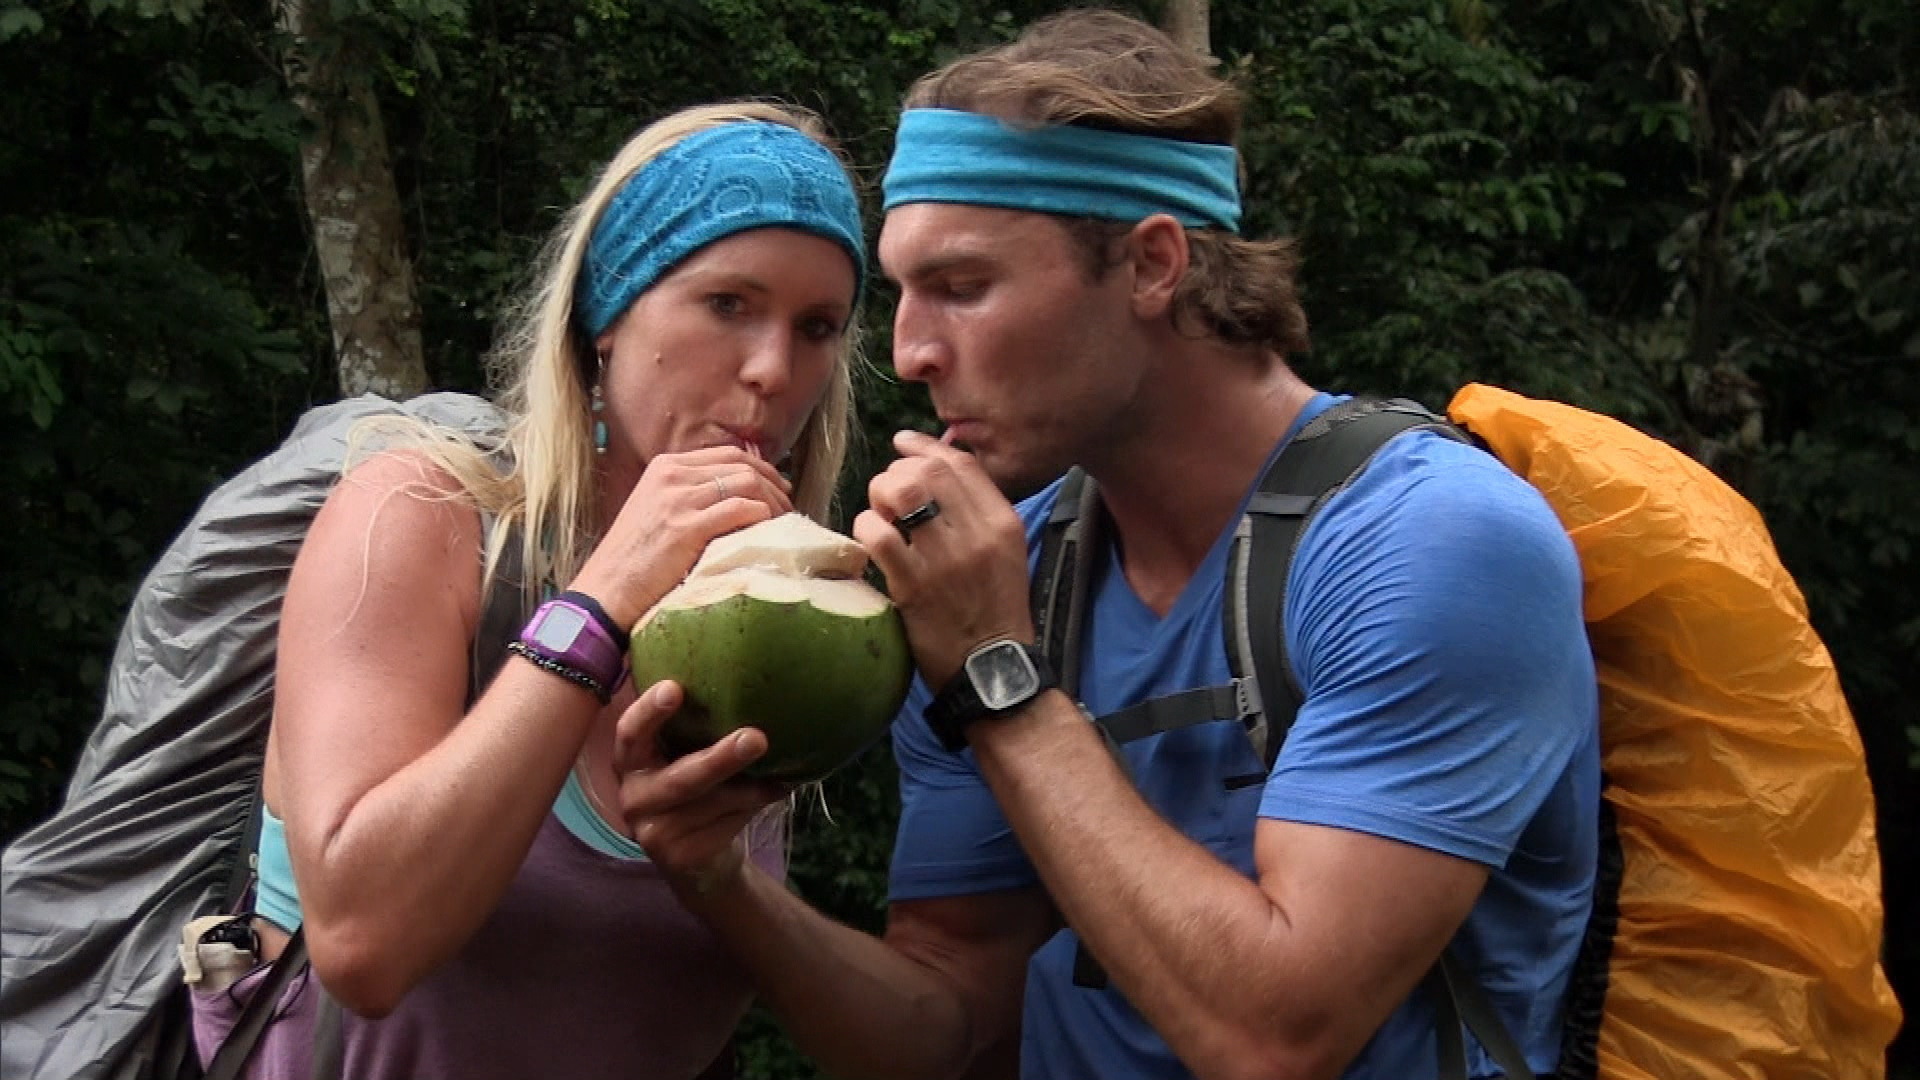 Drinking from a coconut